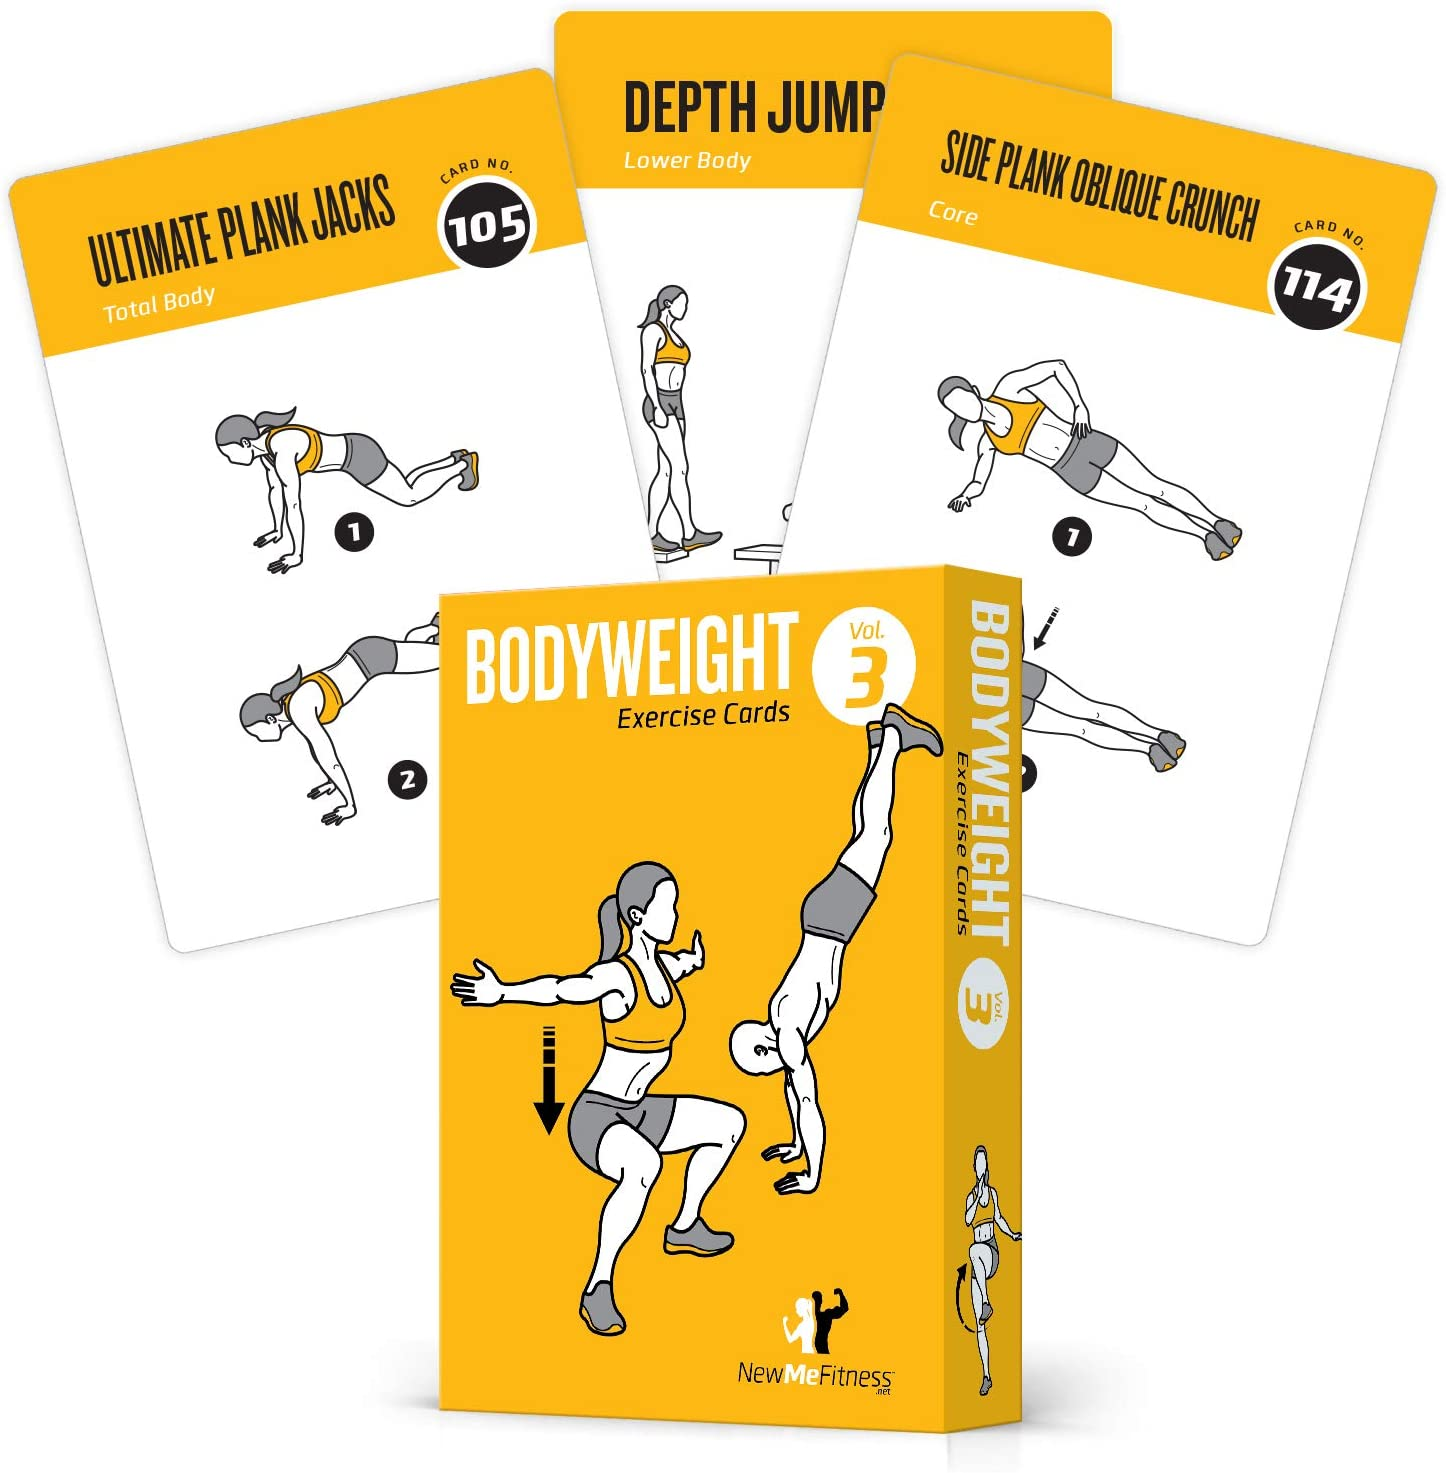 Exercise Cards BODYWEIGHT - Home Gym Workout Personal Trainer Fitness Program Tones Core Ab Legs Glutes Chest Biceps Total Upper Body Workouts Calisthenics Training Routine